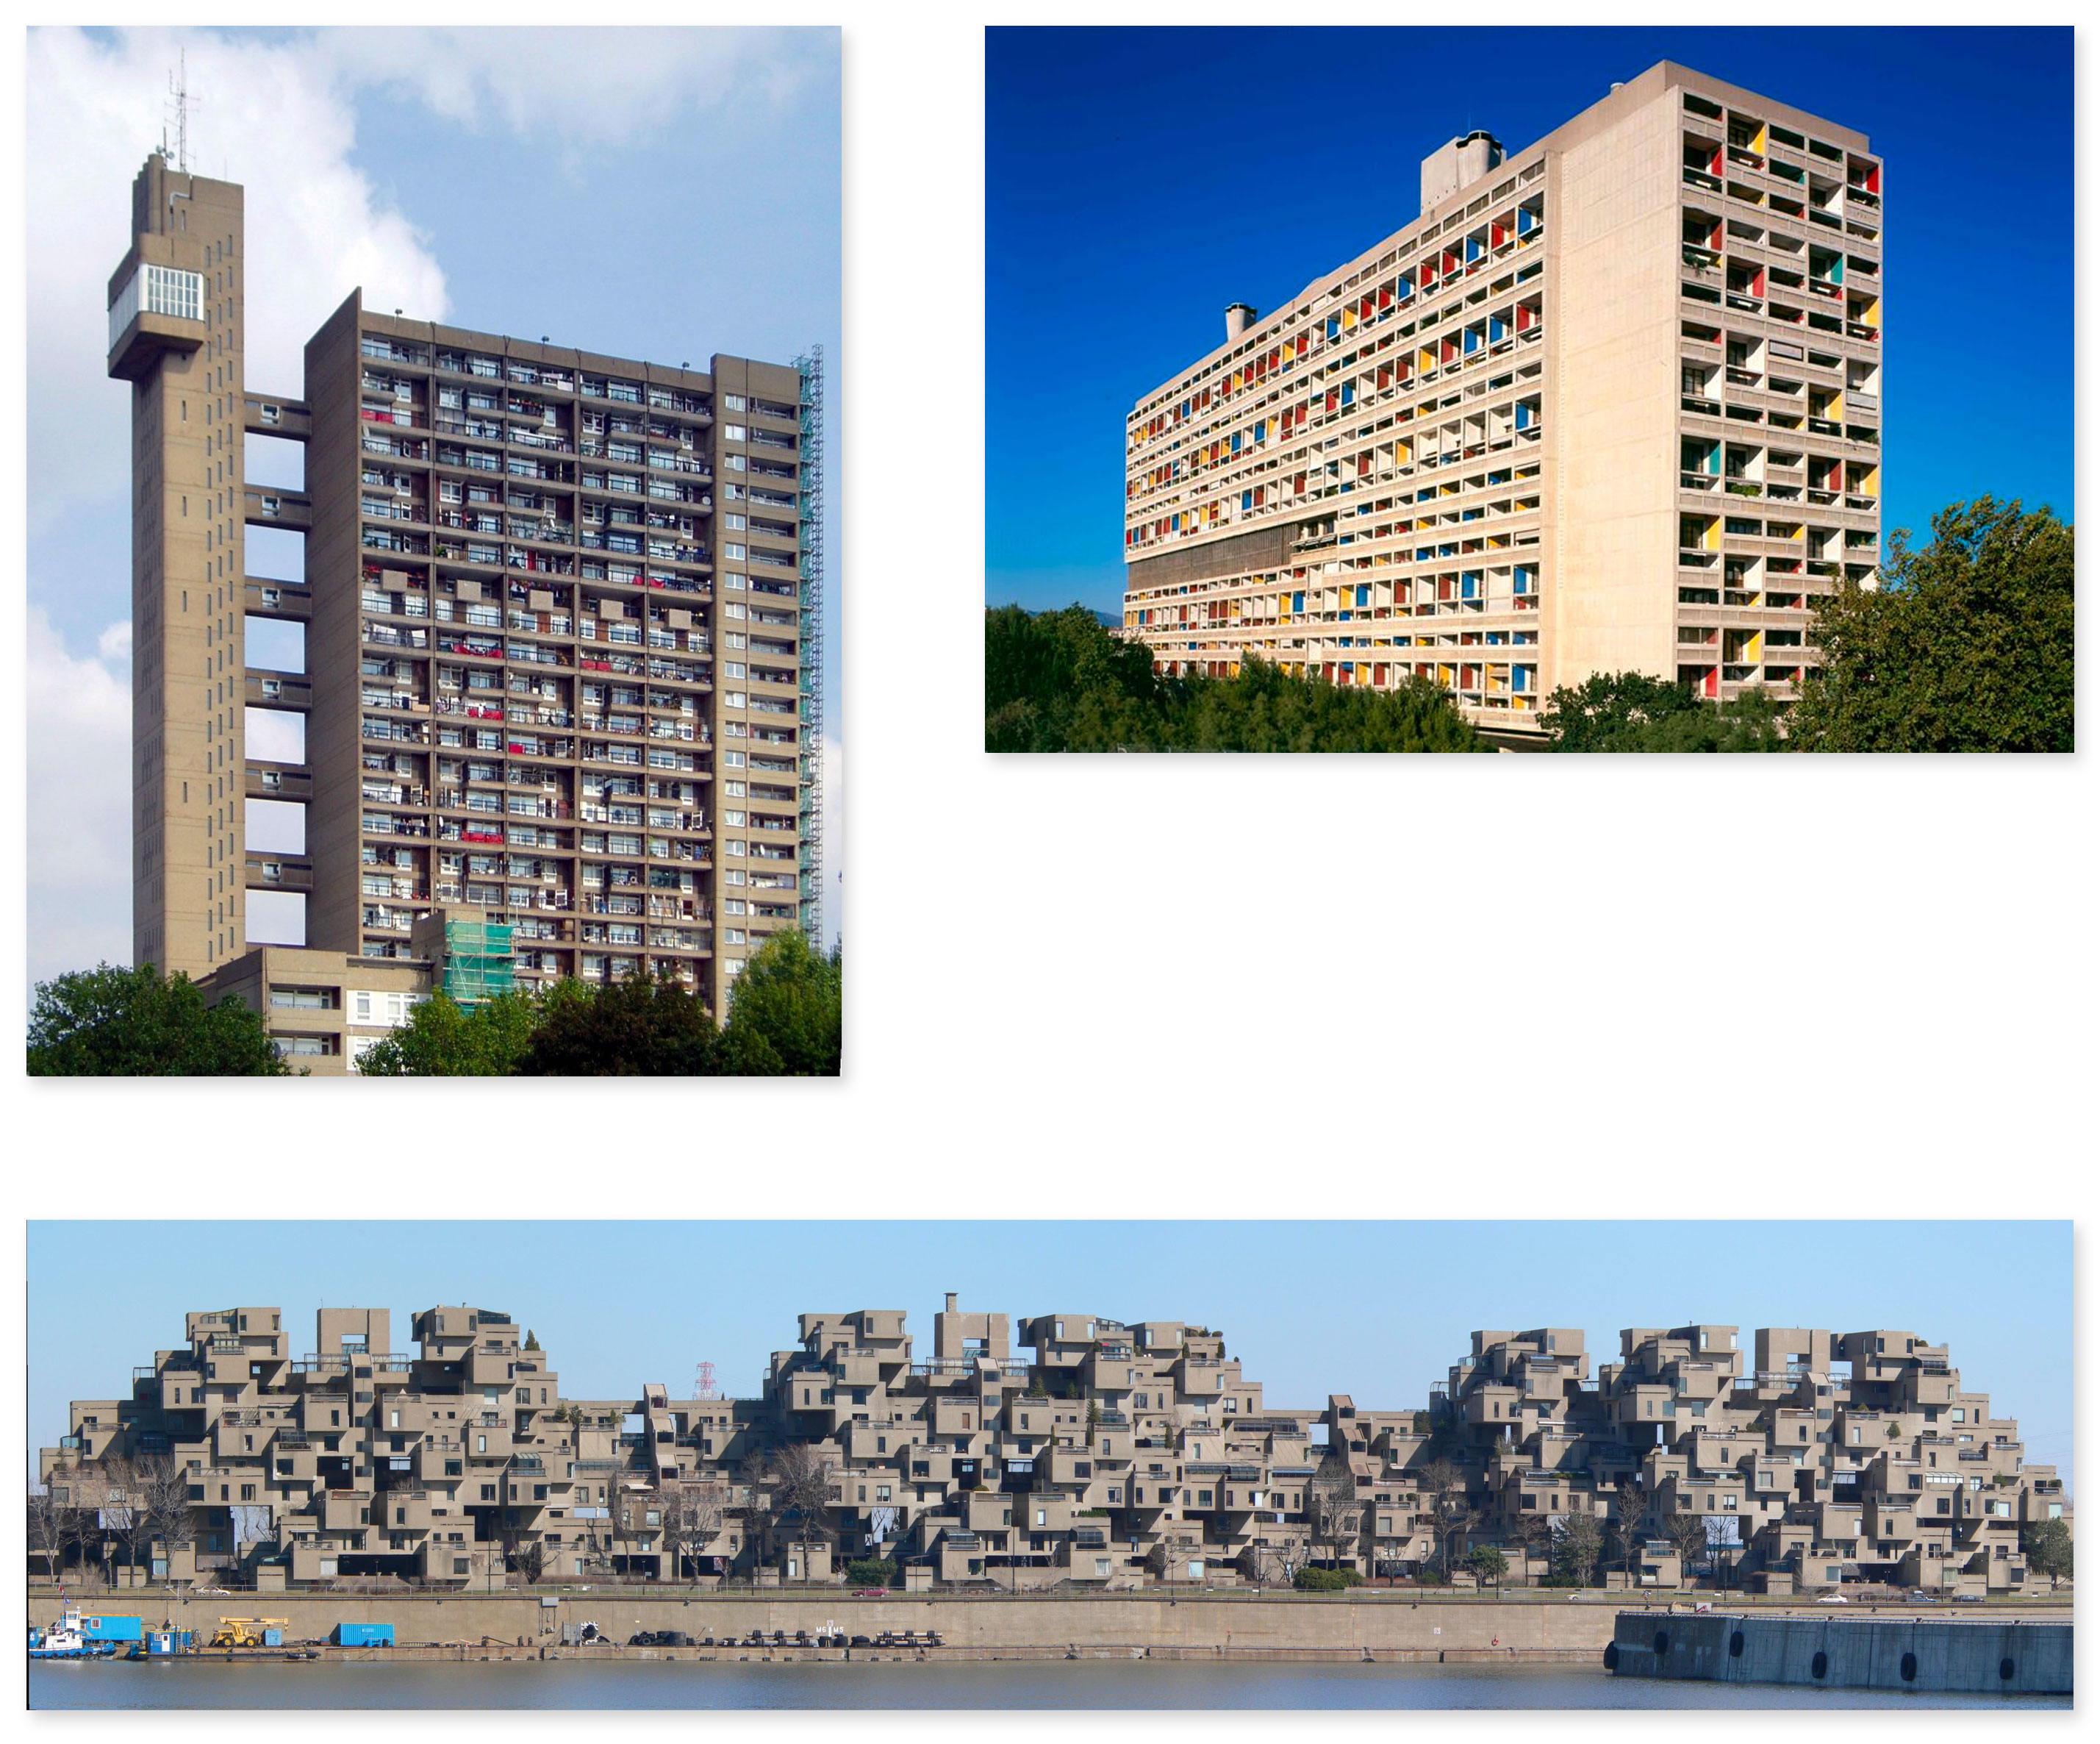 Trellick Tower, London, 1966–1972, designed by Ernő Goldfinger; Le Corbusier's Unité d'habitation in Marseille, France (1952); Habitat 67 in Montreal, Quebec, Canada